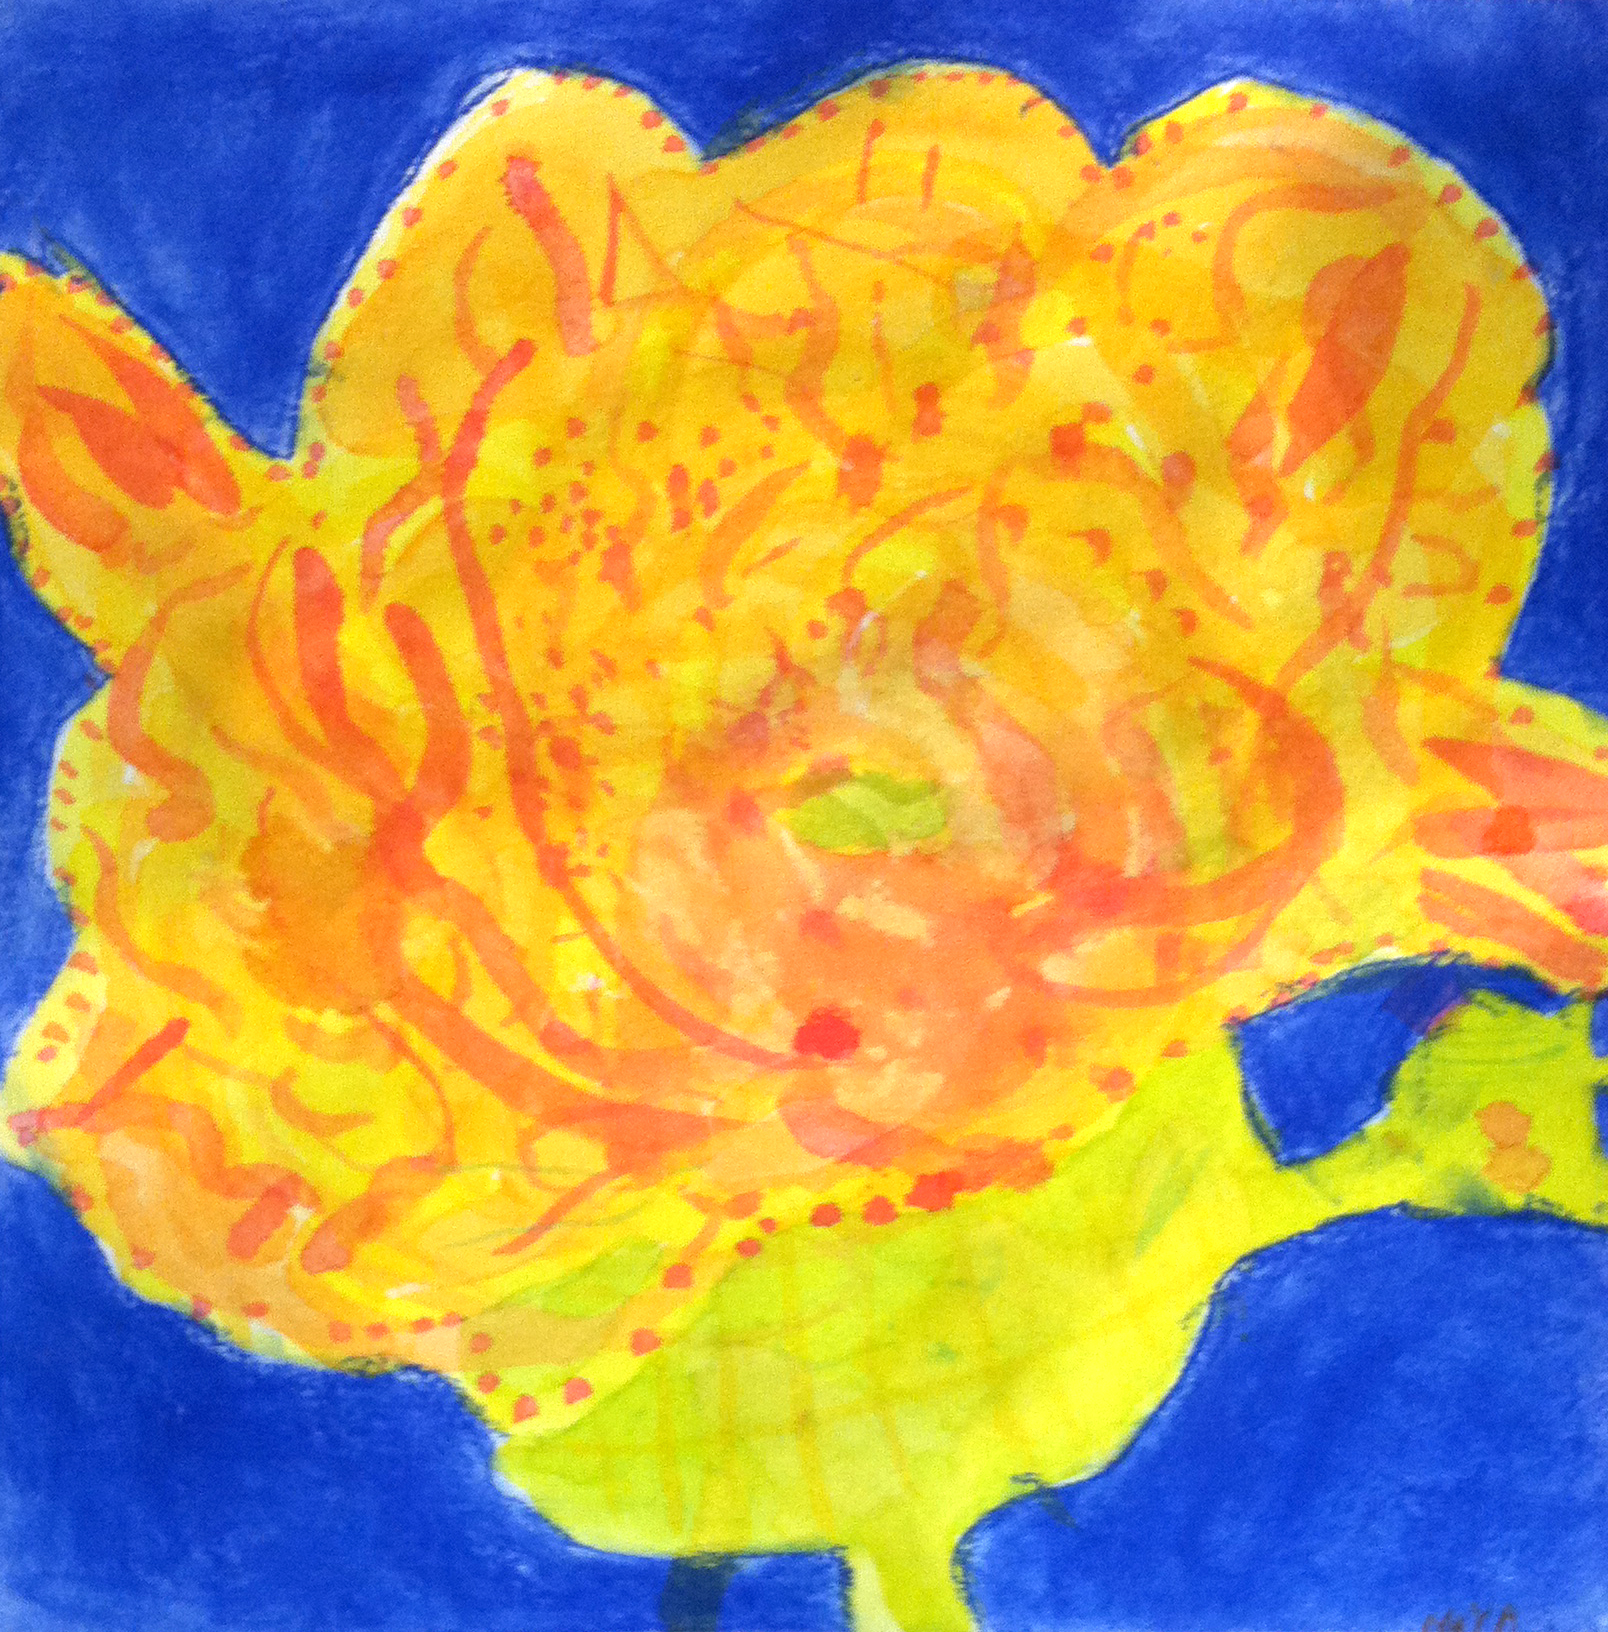 Observational Painting of a Flower, Age 5